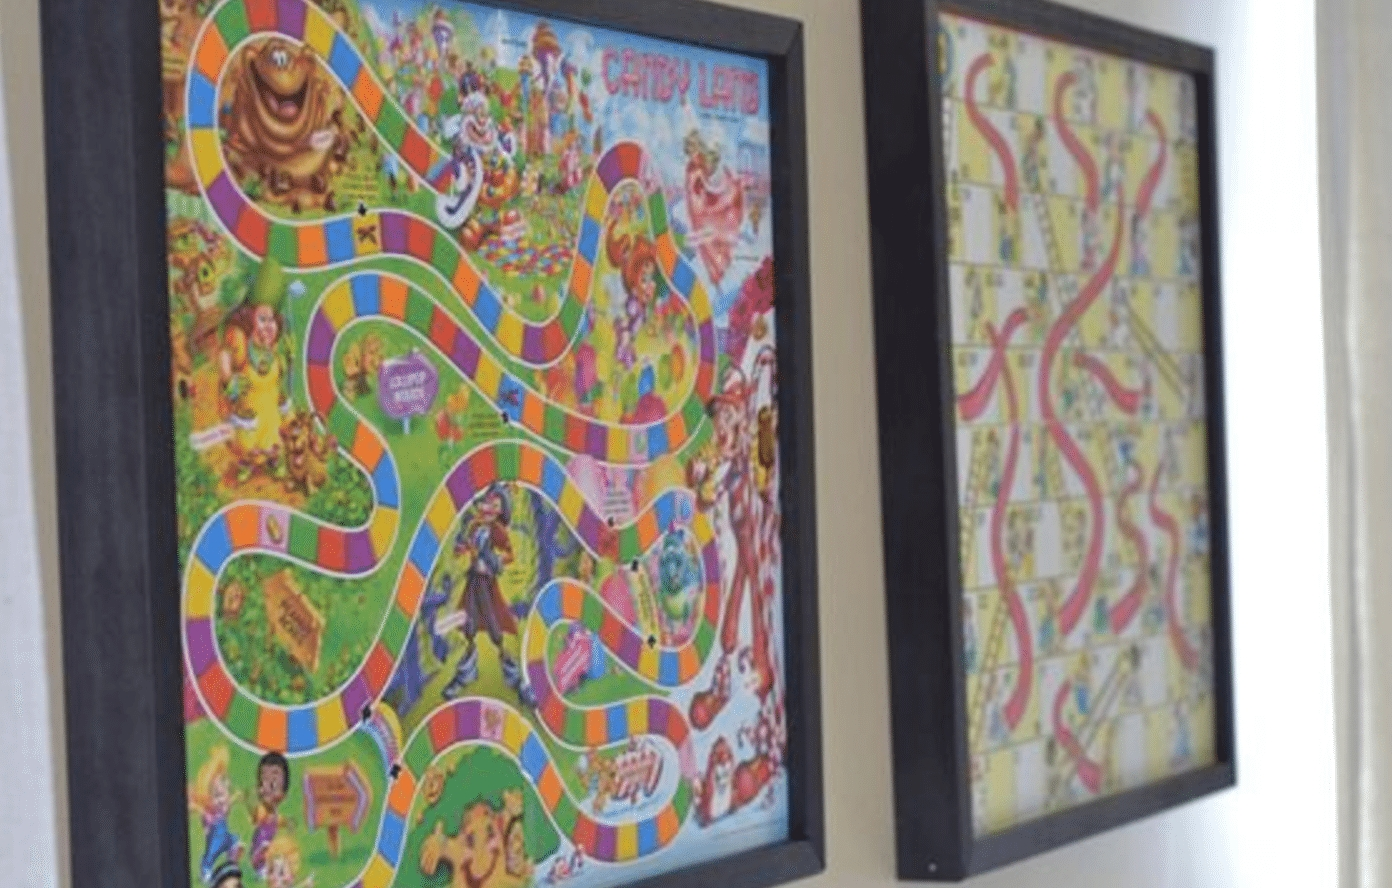 Framed Board Games May Be The Best Game Storage Idea Out There Regarding Board Game Wall Art (View 3 of 20)